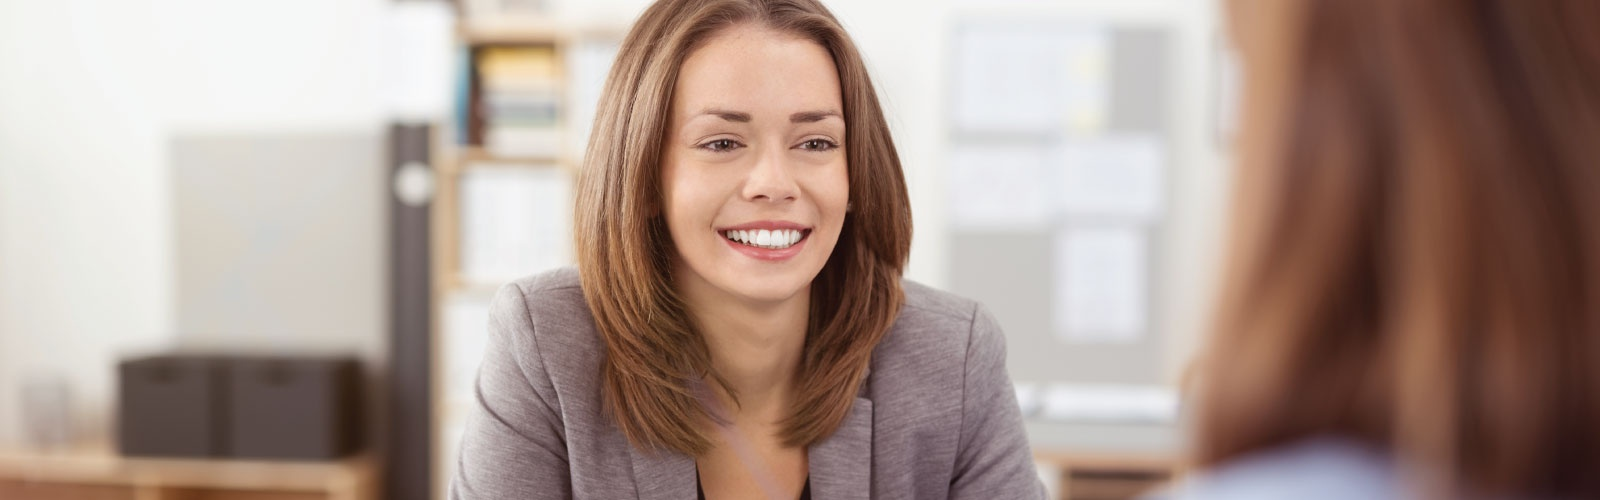 A person in business attire smiles at another who is not facing the camera